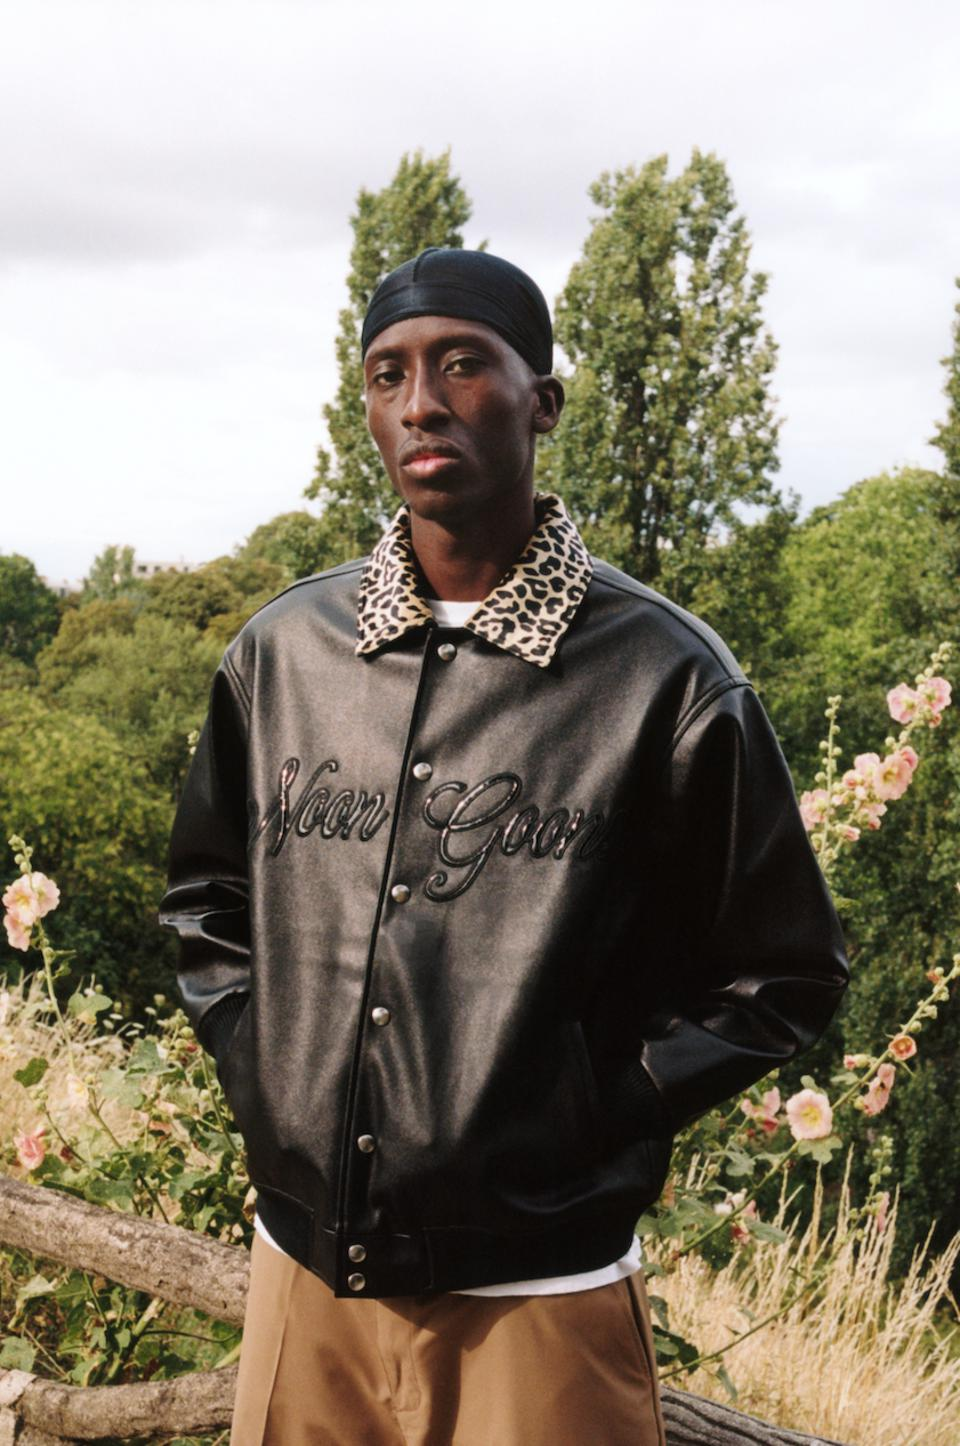 The Noon Goons FW20 Fly By Leather Jacket features faux leather self fabric with a velvet leopard lining